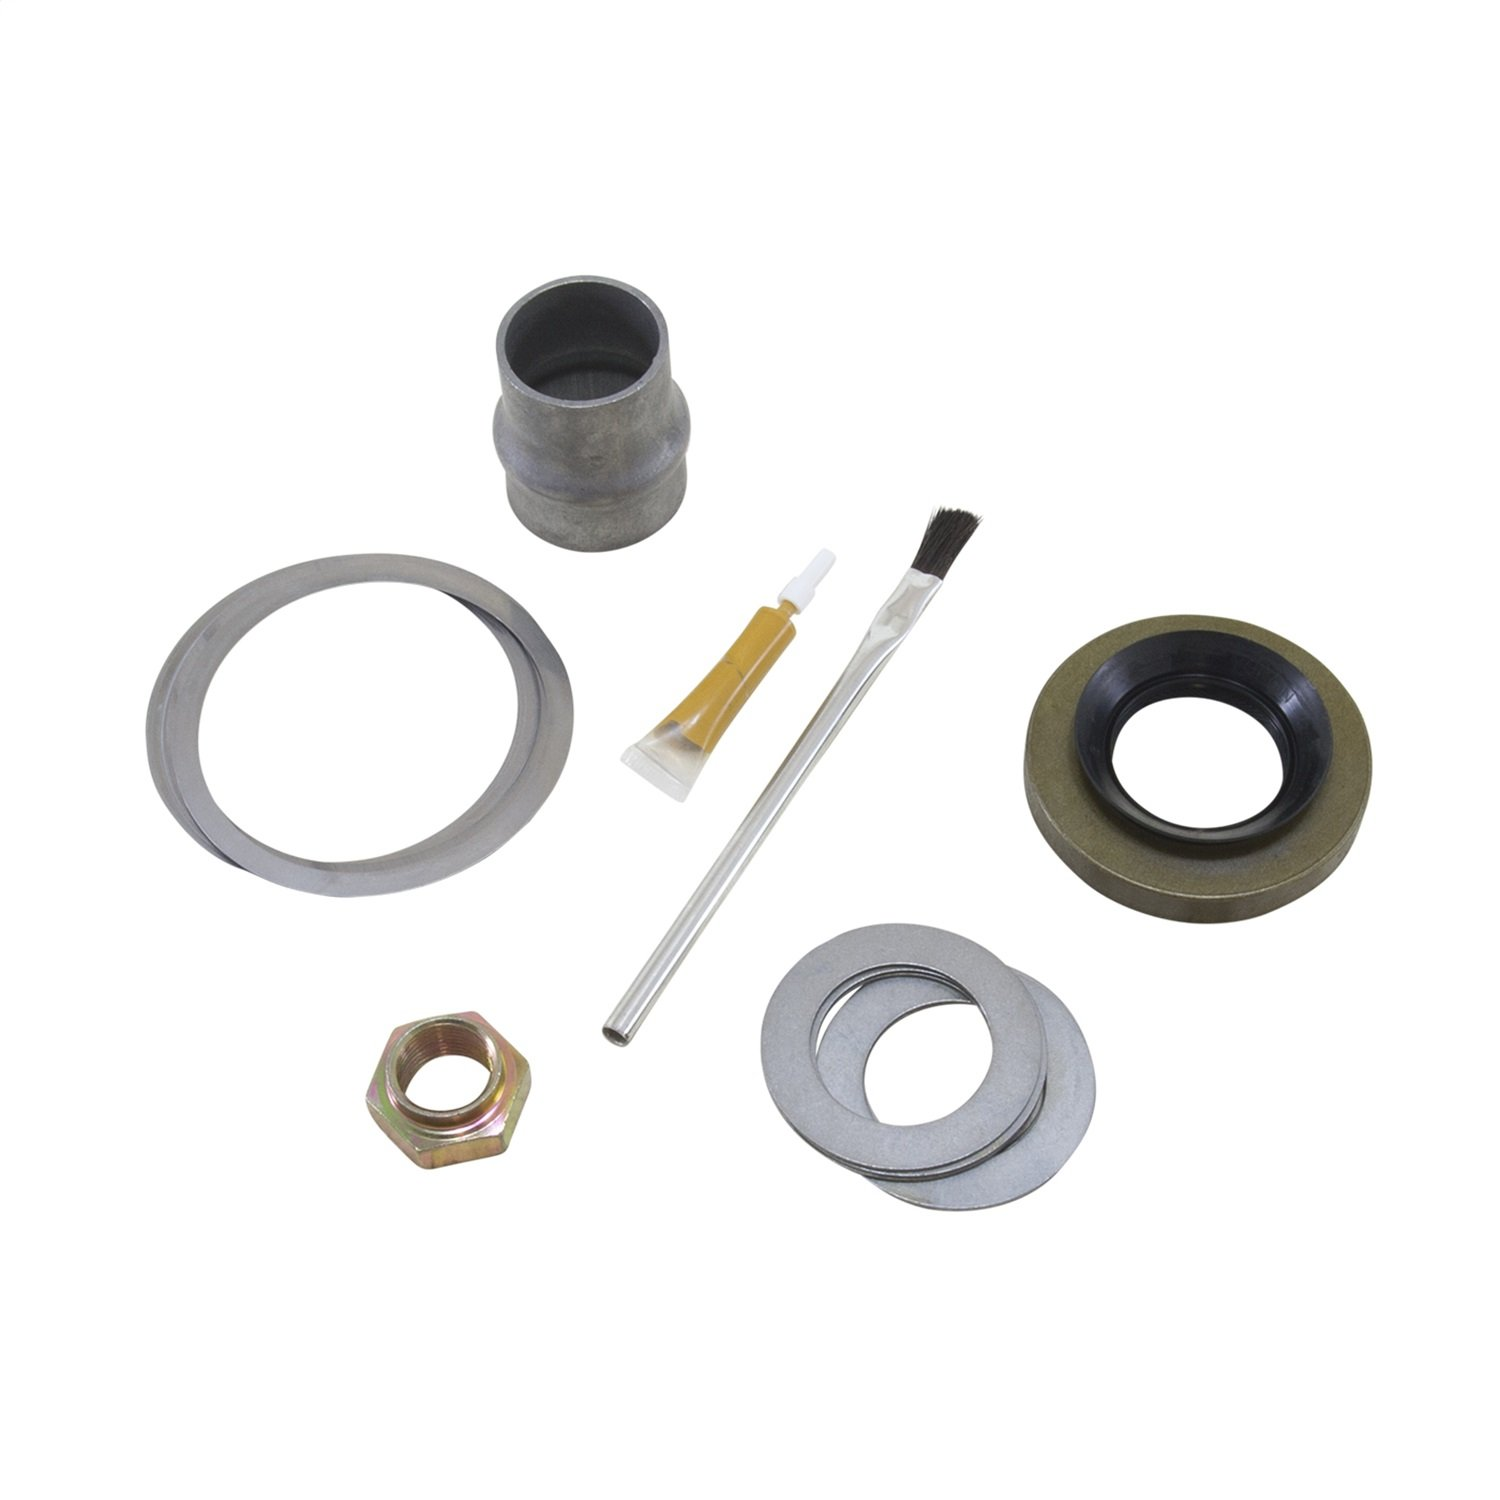 Yukon (MK GM12P) Minor Installation Kit for GM 12-Bolt Car Differential